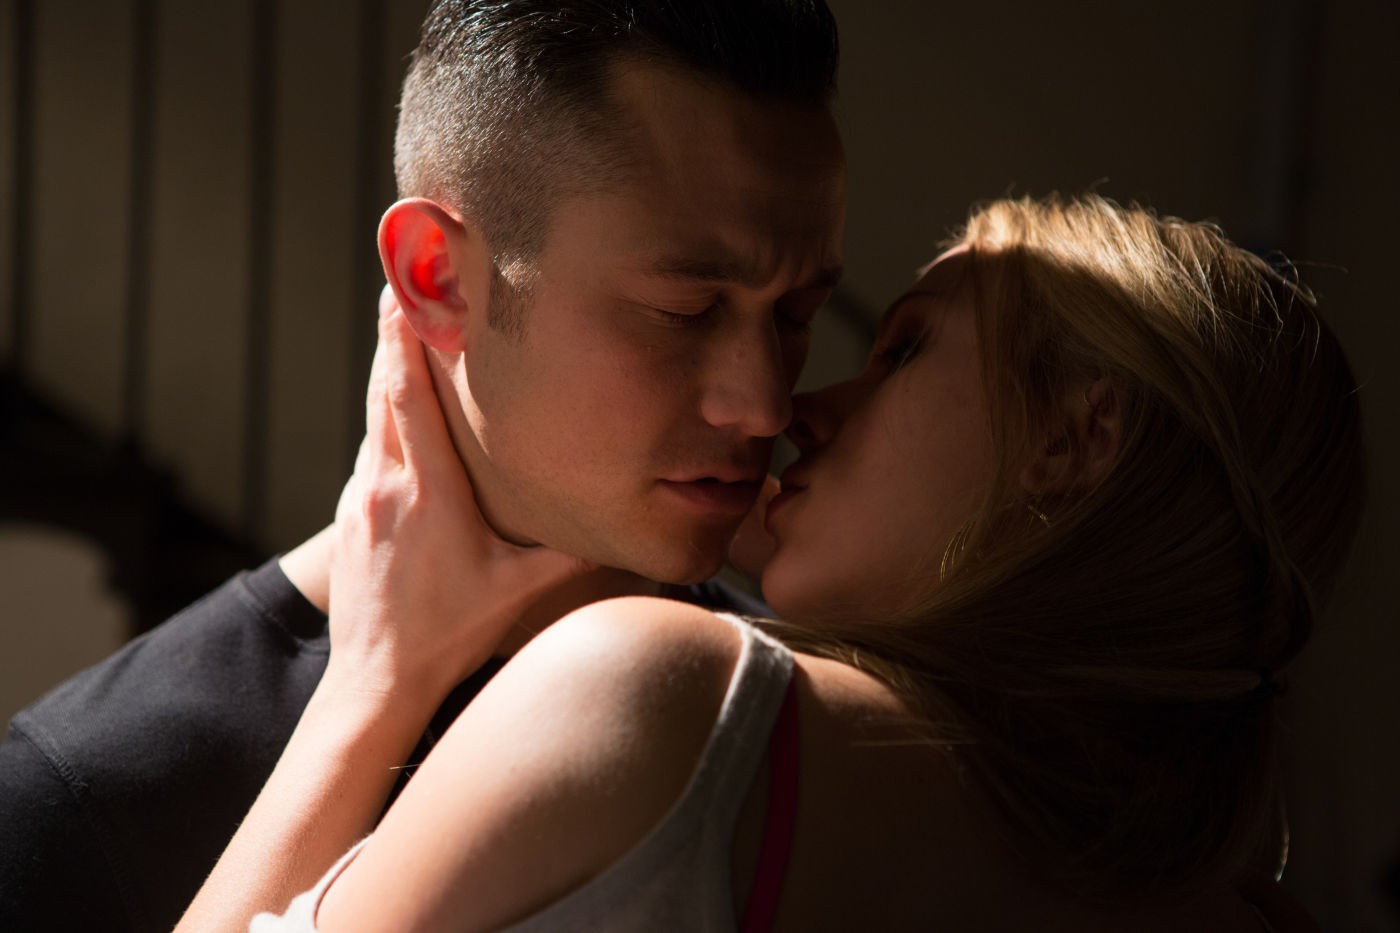 Porn In Don Jon don jon' is more than just a good vibration | speakeasy magazine